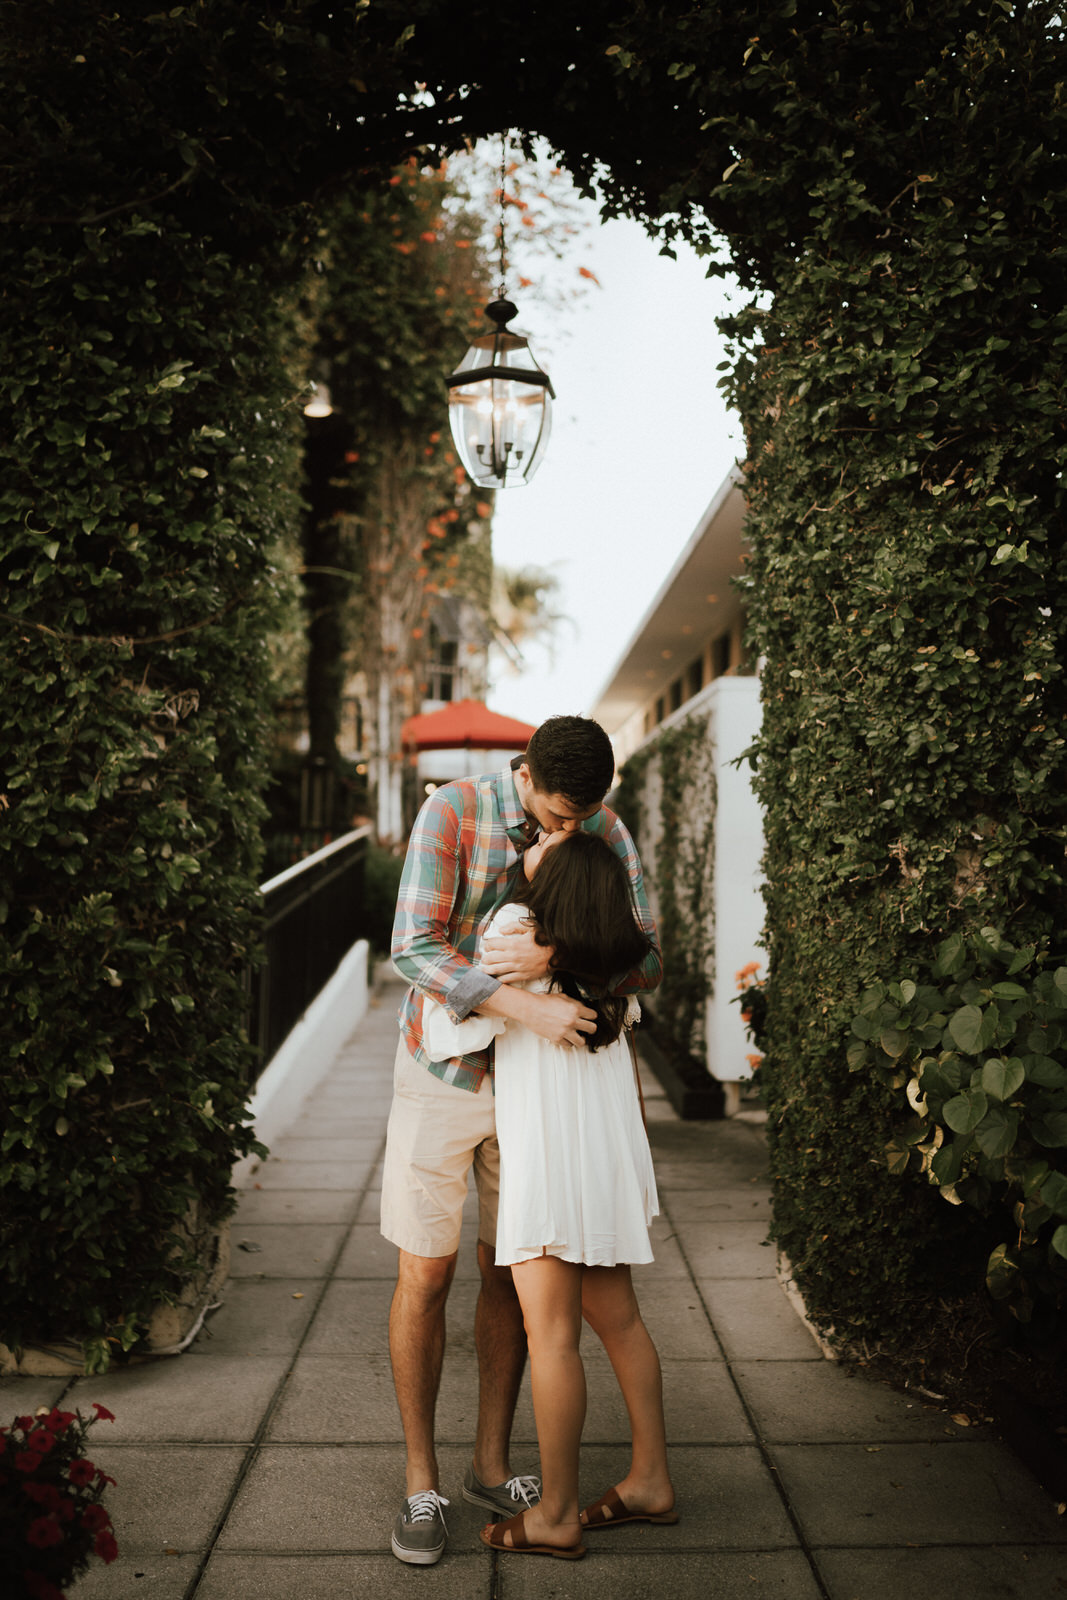 Naples 5th Ave Proposal Photos- Michelle Gonzalez Photography- Matt and Jenna-55.JPG